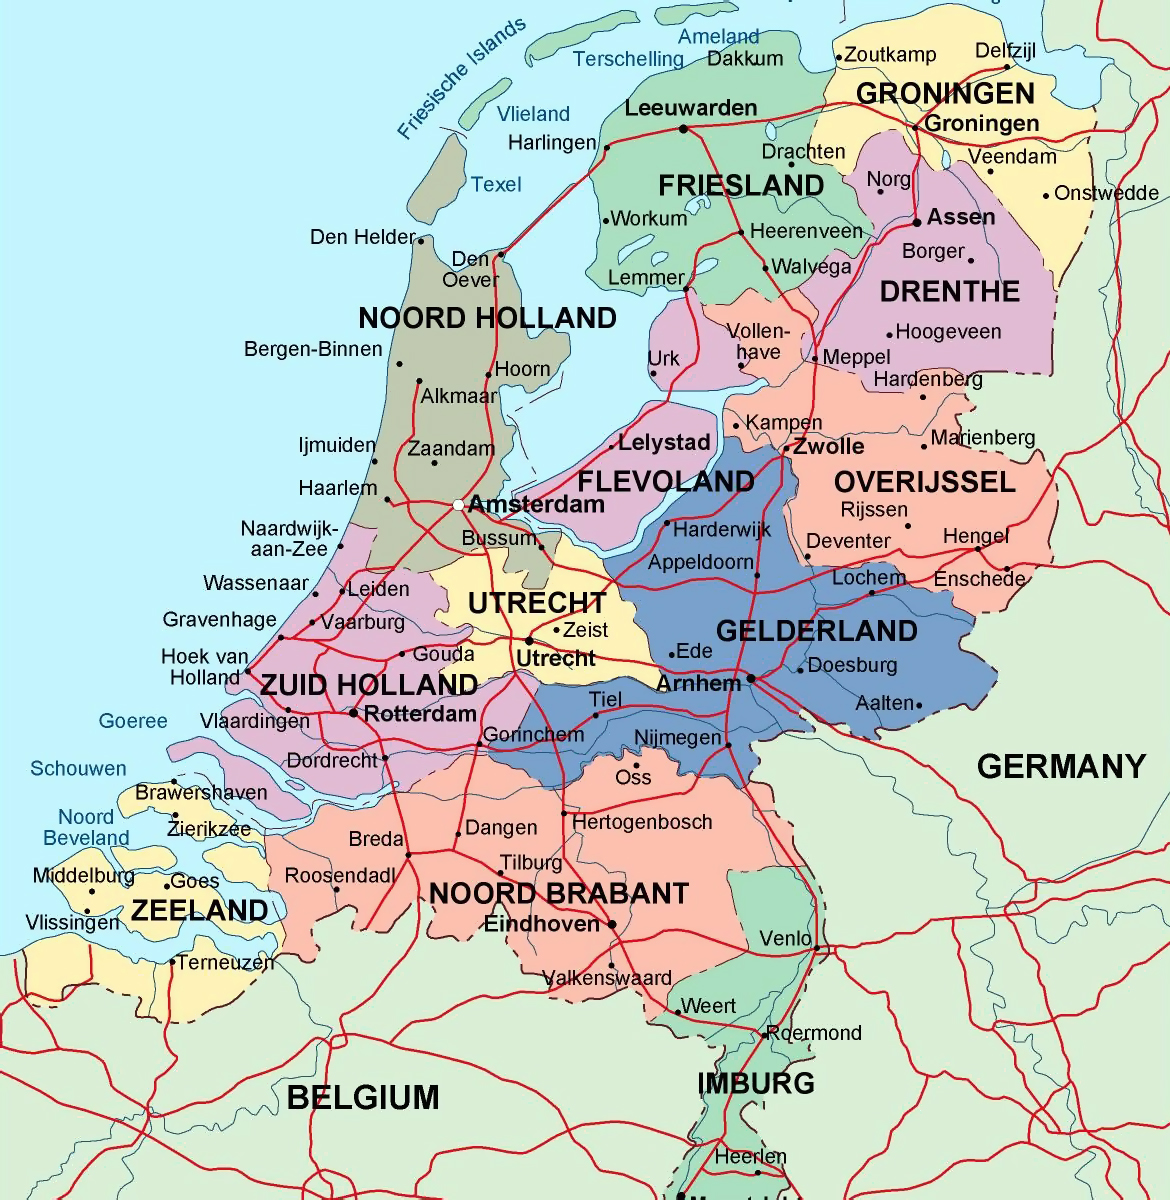 Detailed Administrative Map Of Netherlands With Major Cities - Germany map with major cities